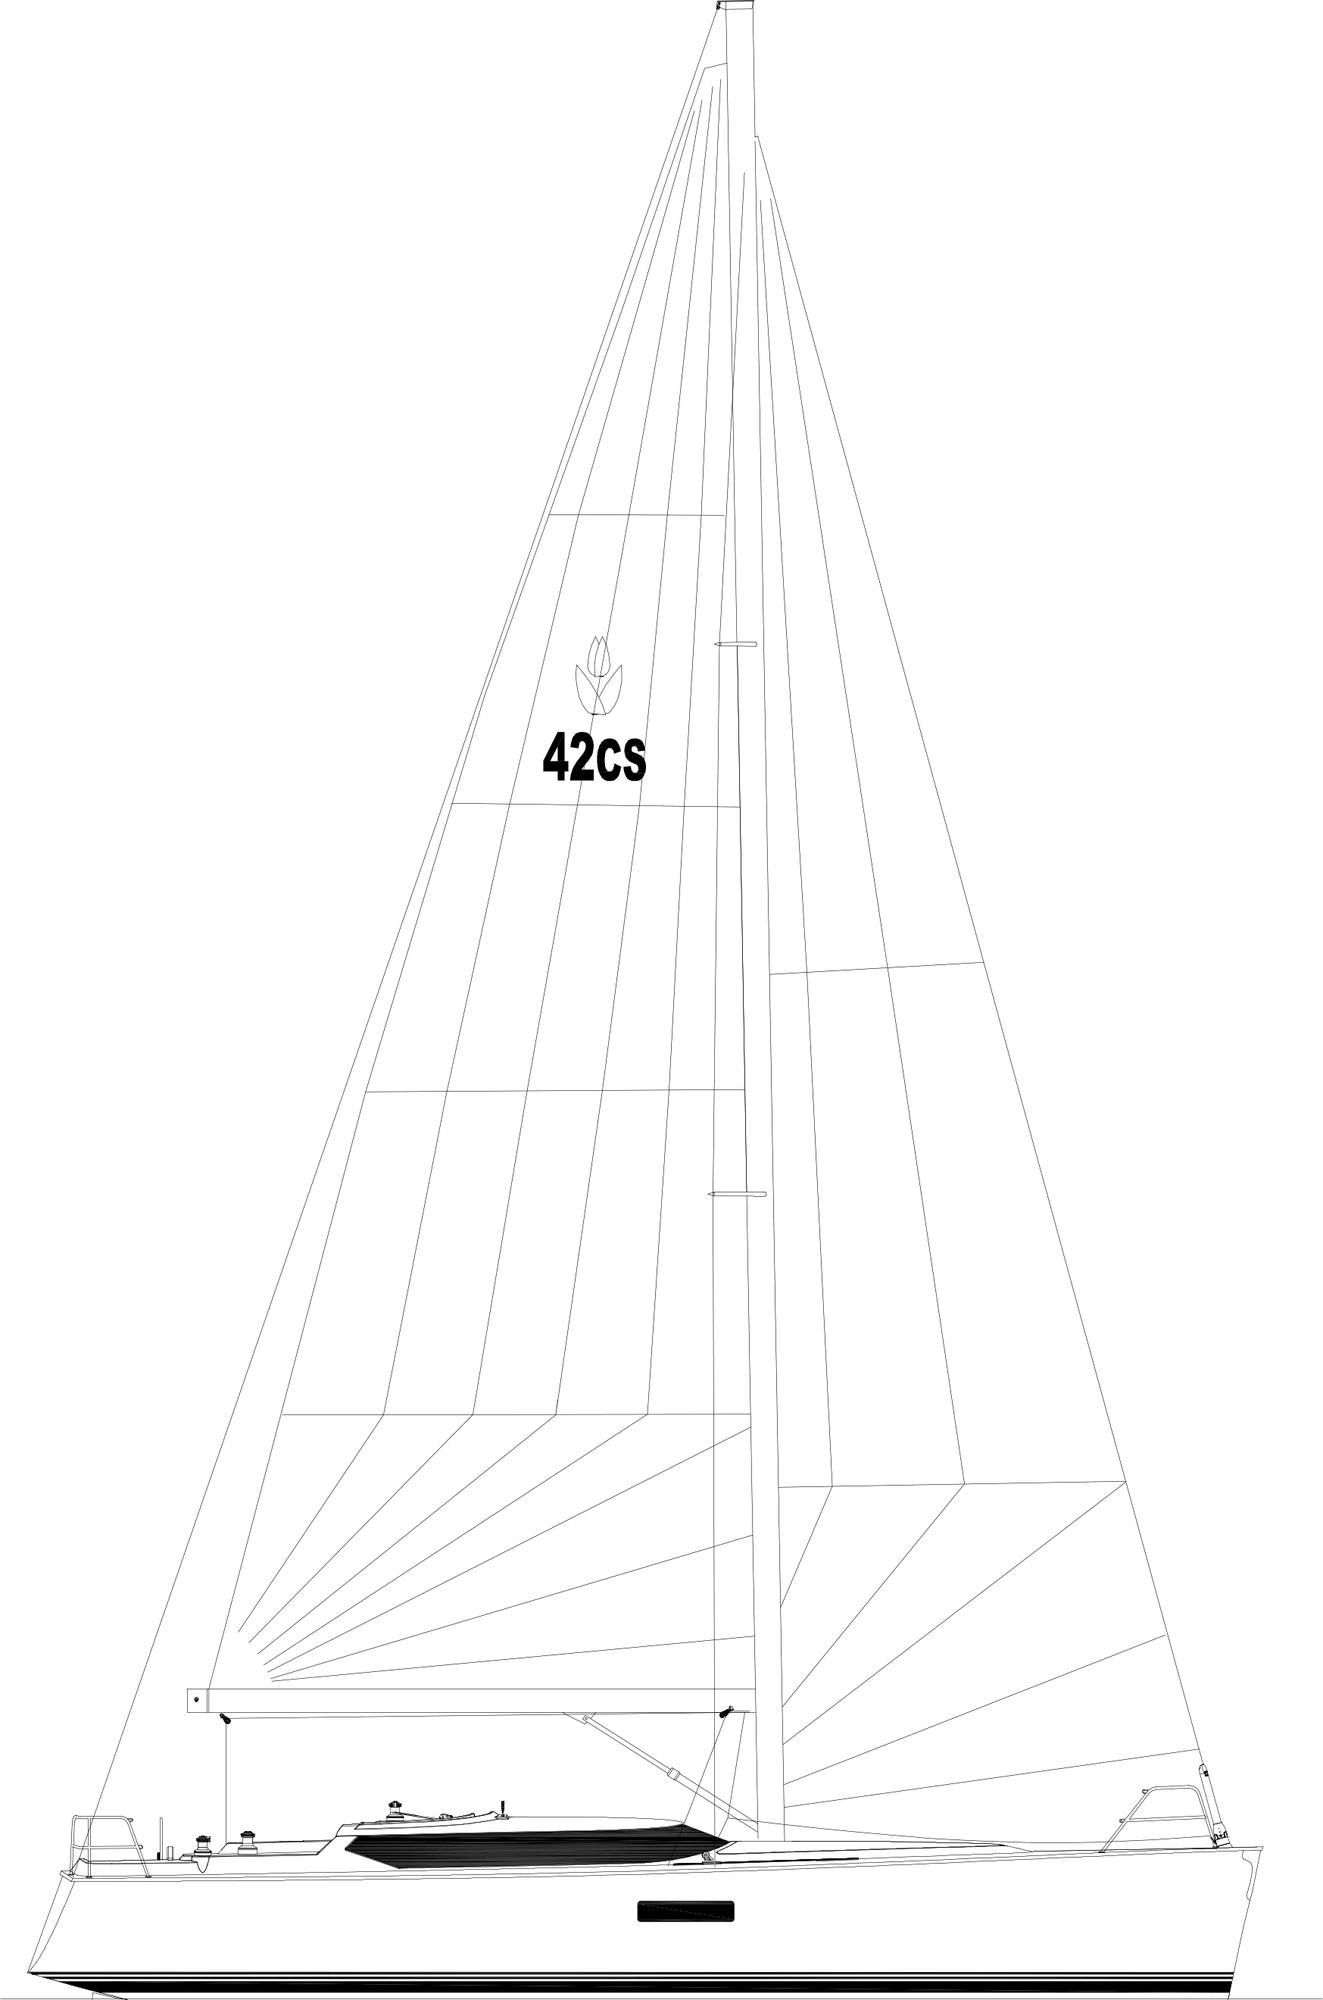 Conyplex Contest 42 CS - contest_42cs_sailplan_above_water.jpg